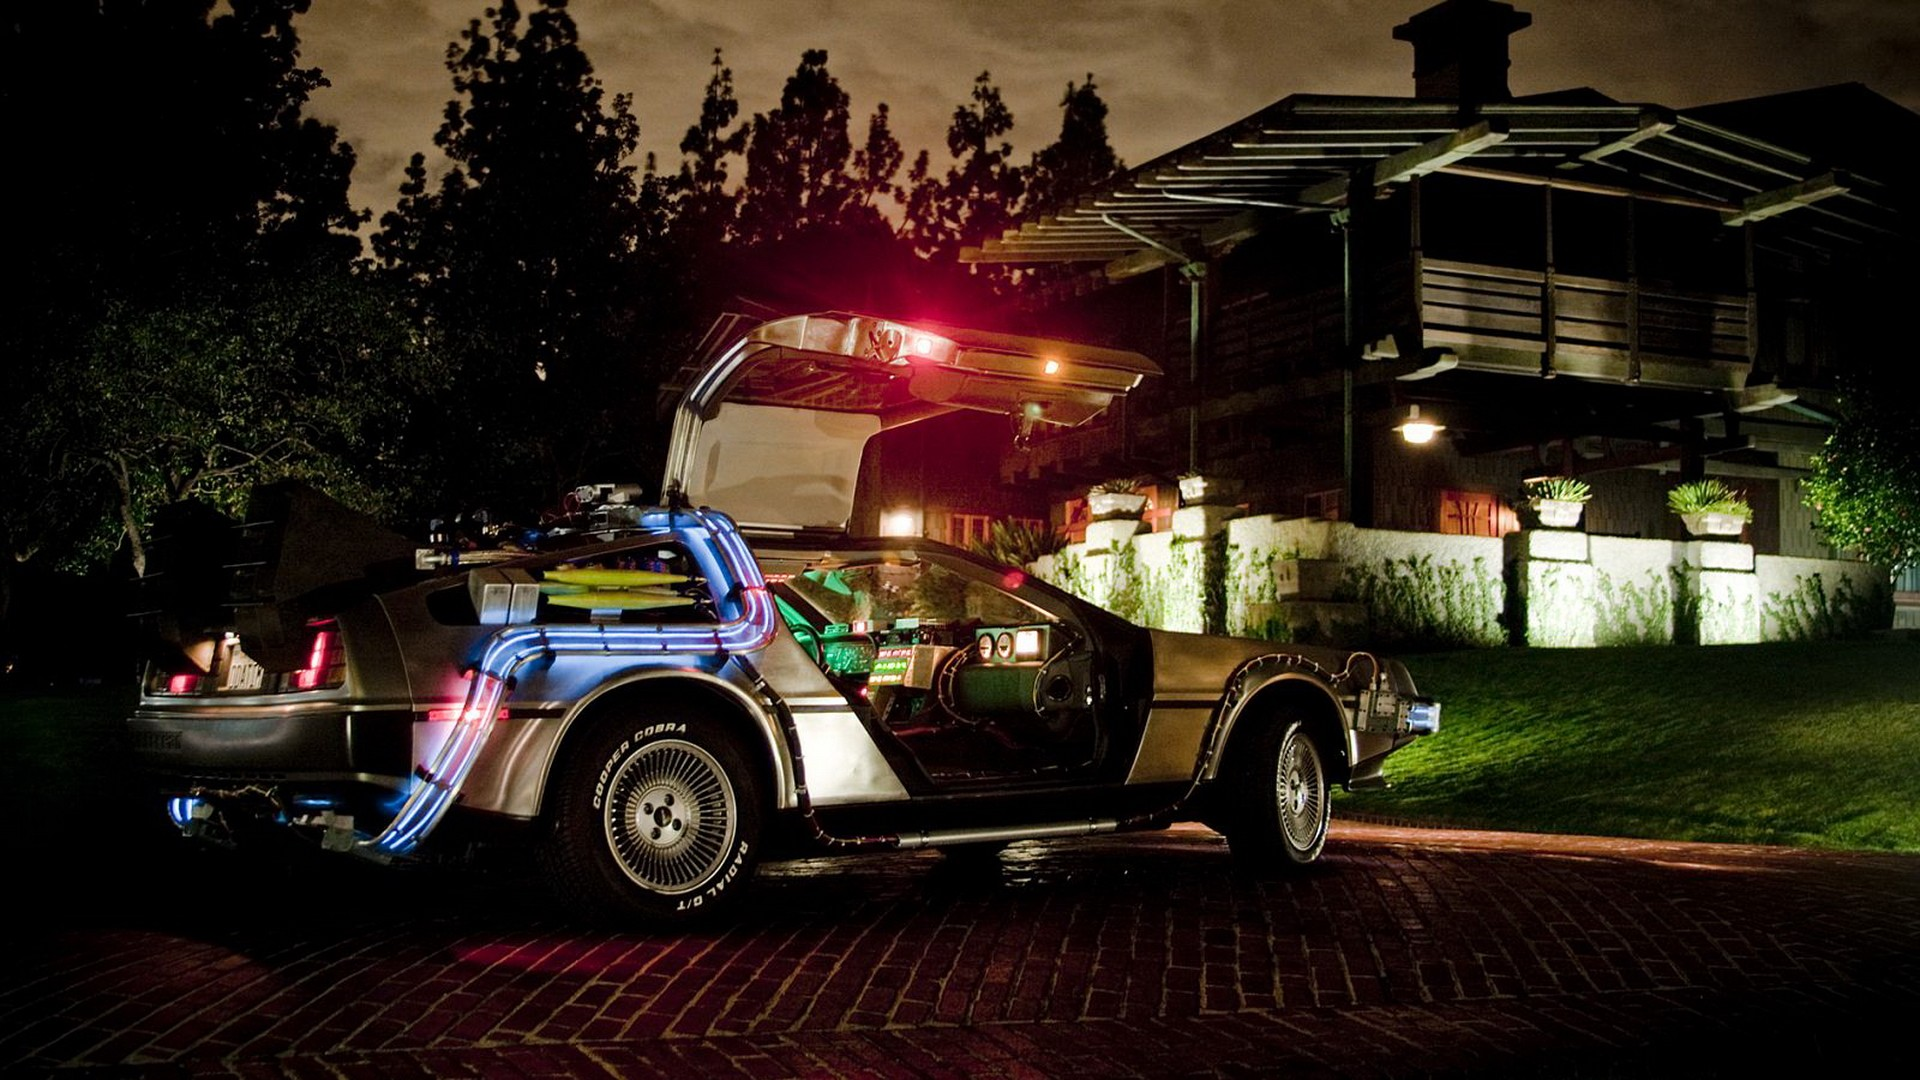 DeLorean Back Wallpaper 1920x1080 DeLorean Back To The Future 1920x1080